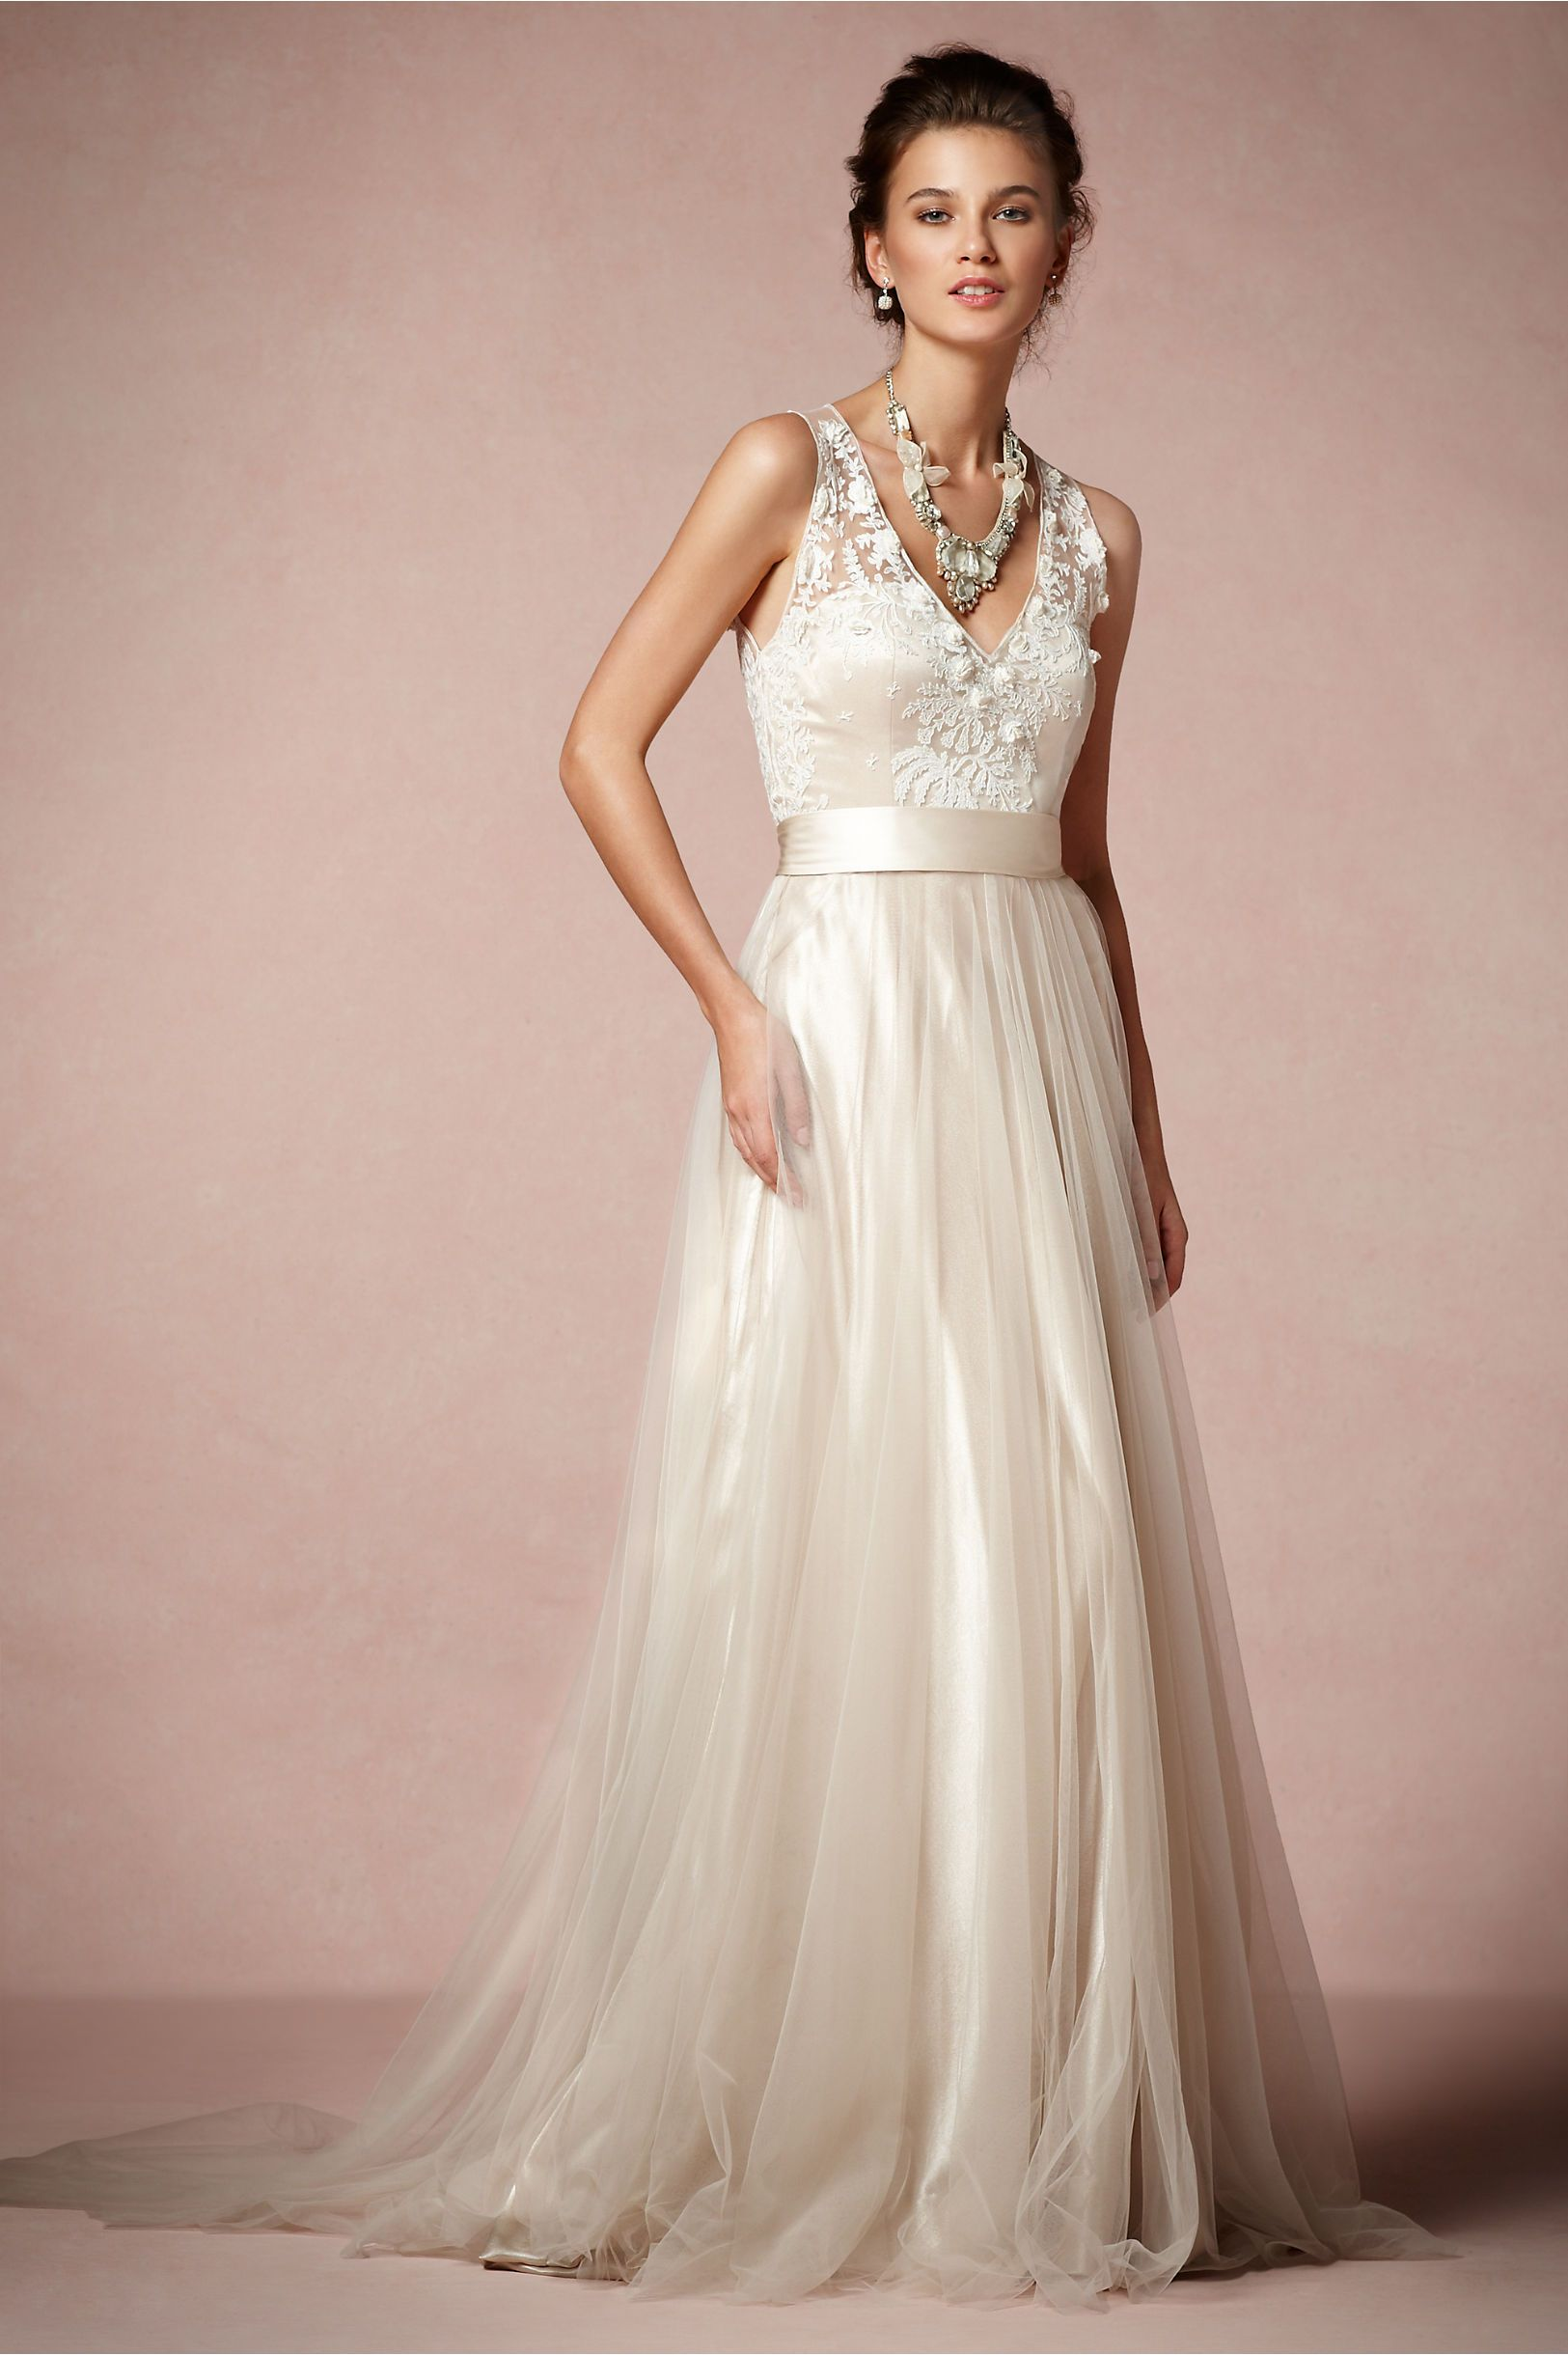 Onyx Gown in The Bride Wedding Dresses at BHLDN | TRAJES PARA NOVIA ...